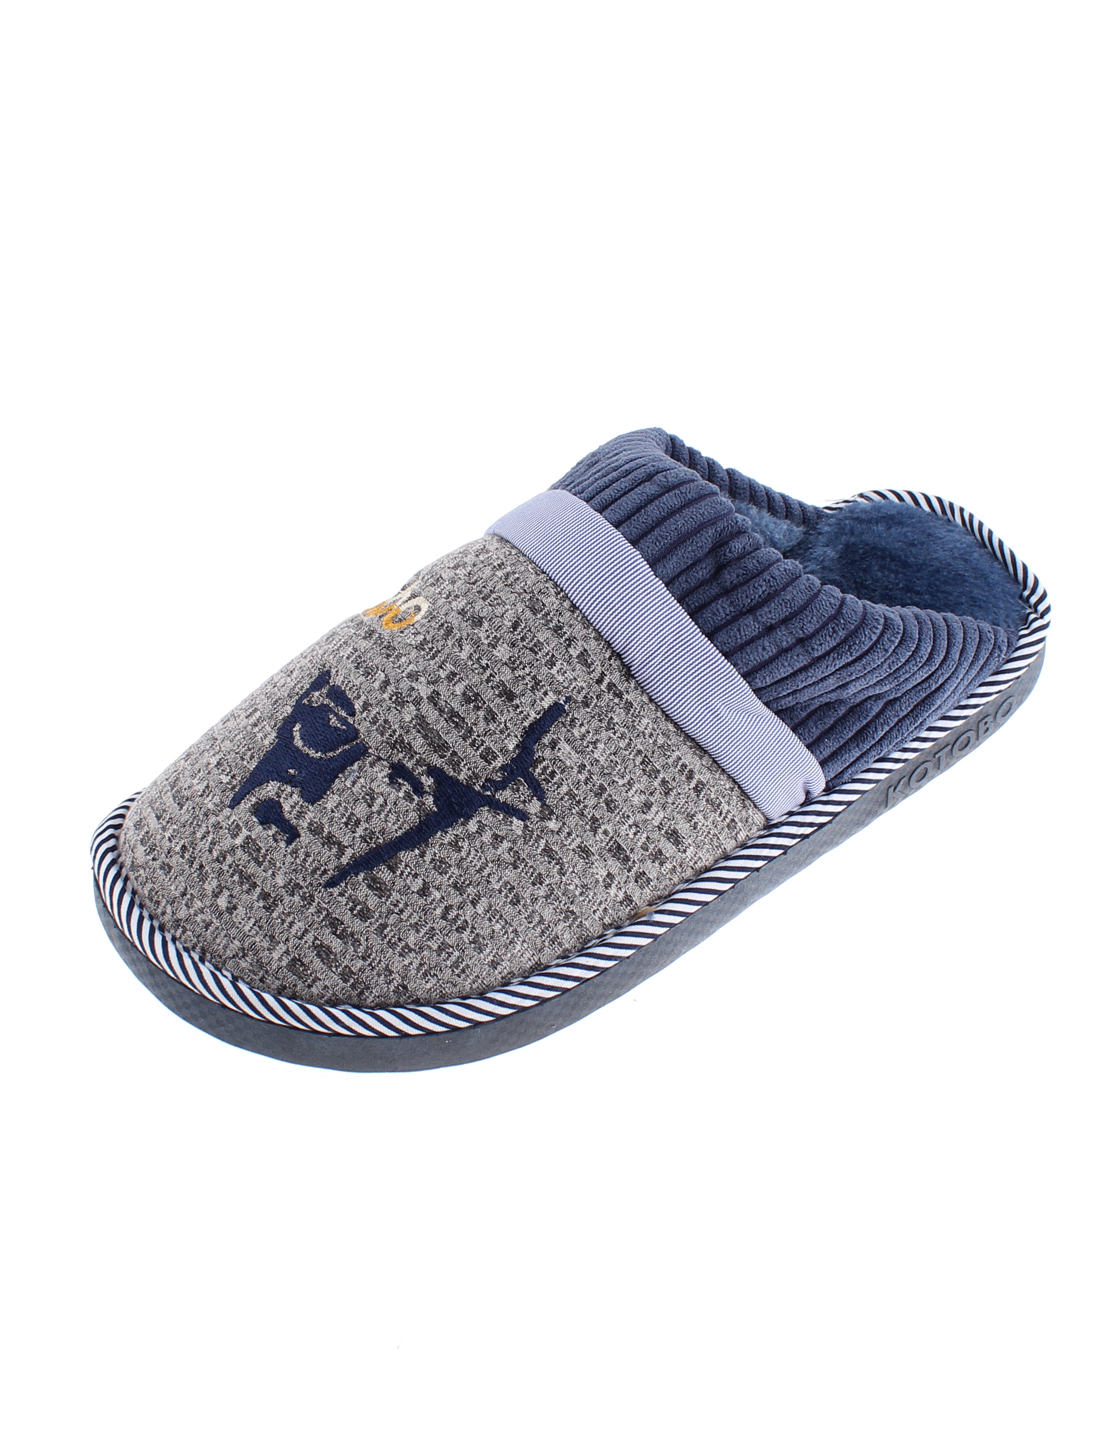 Winter Women Wearing Non-skid Sole Warmer Cotton Slippers Blue US 8.5